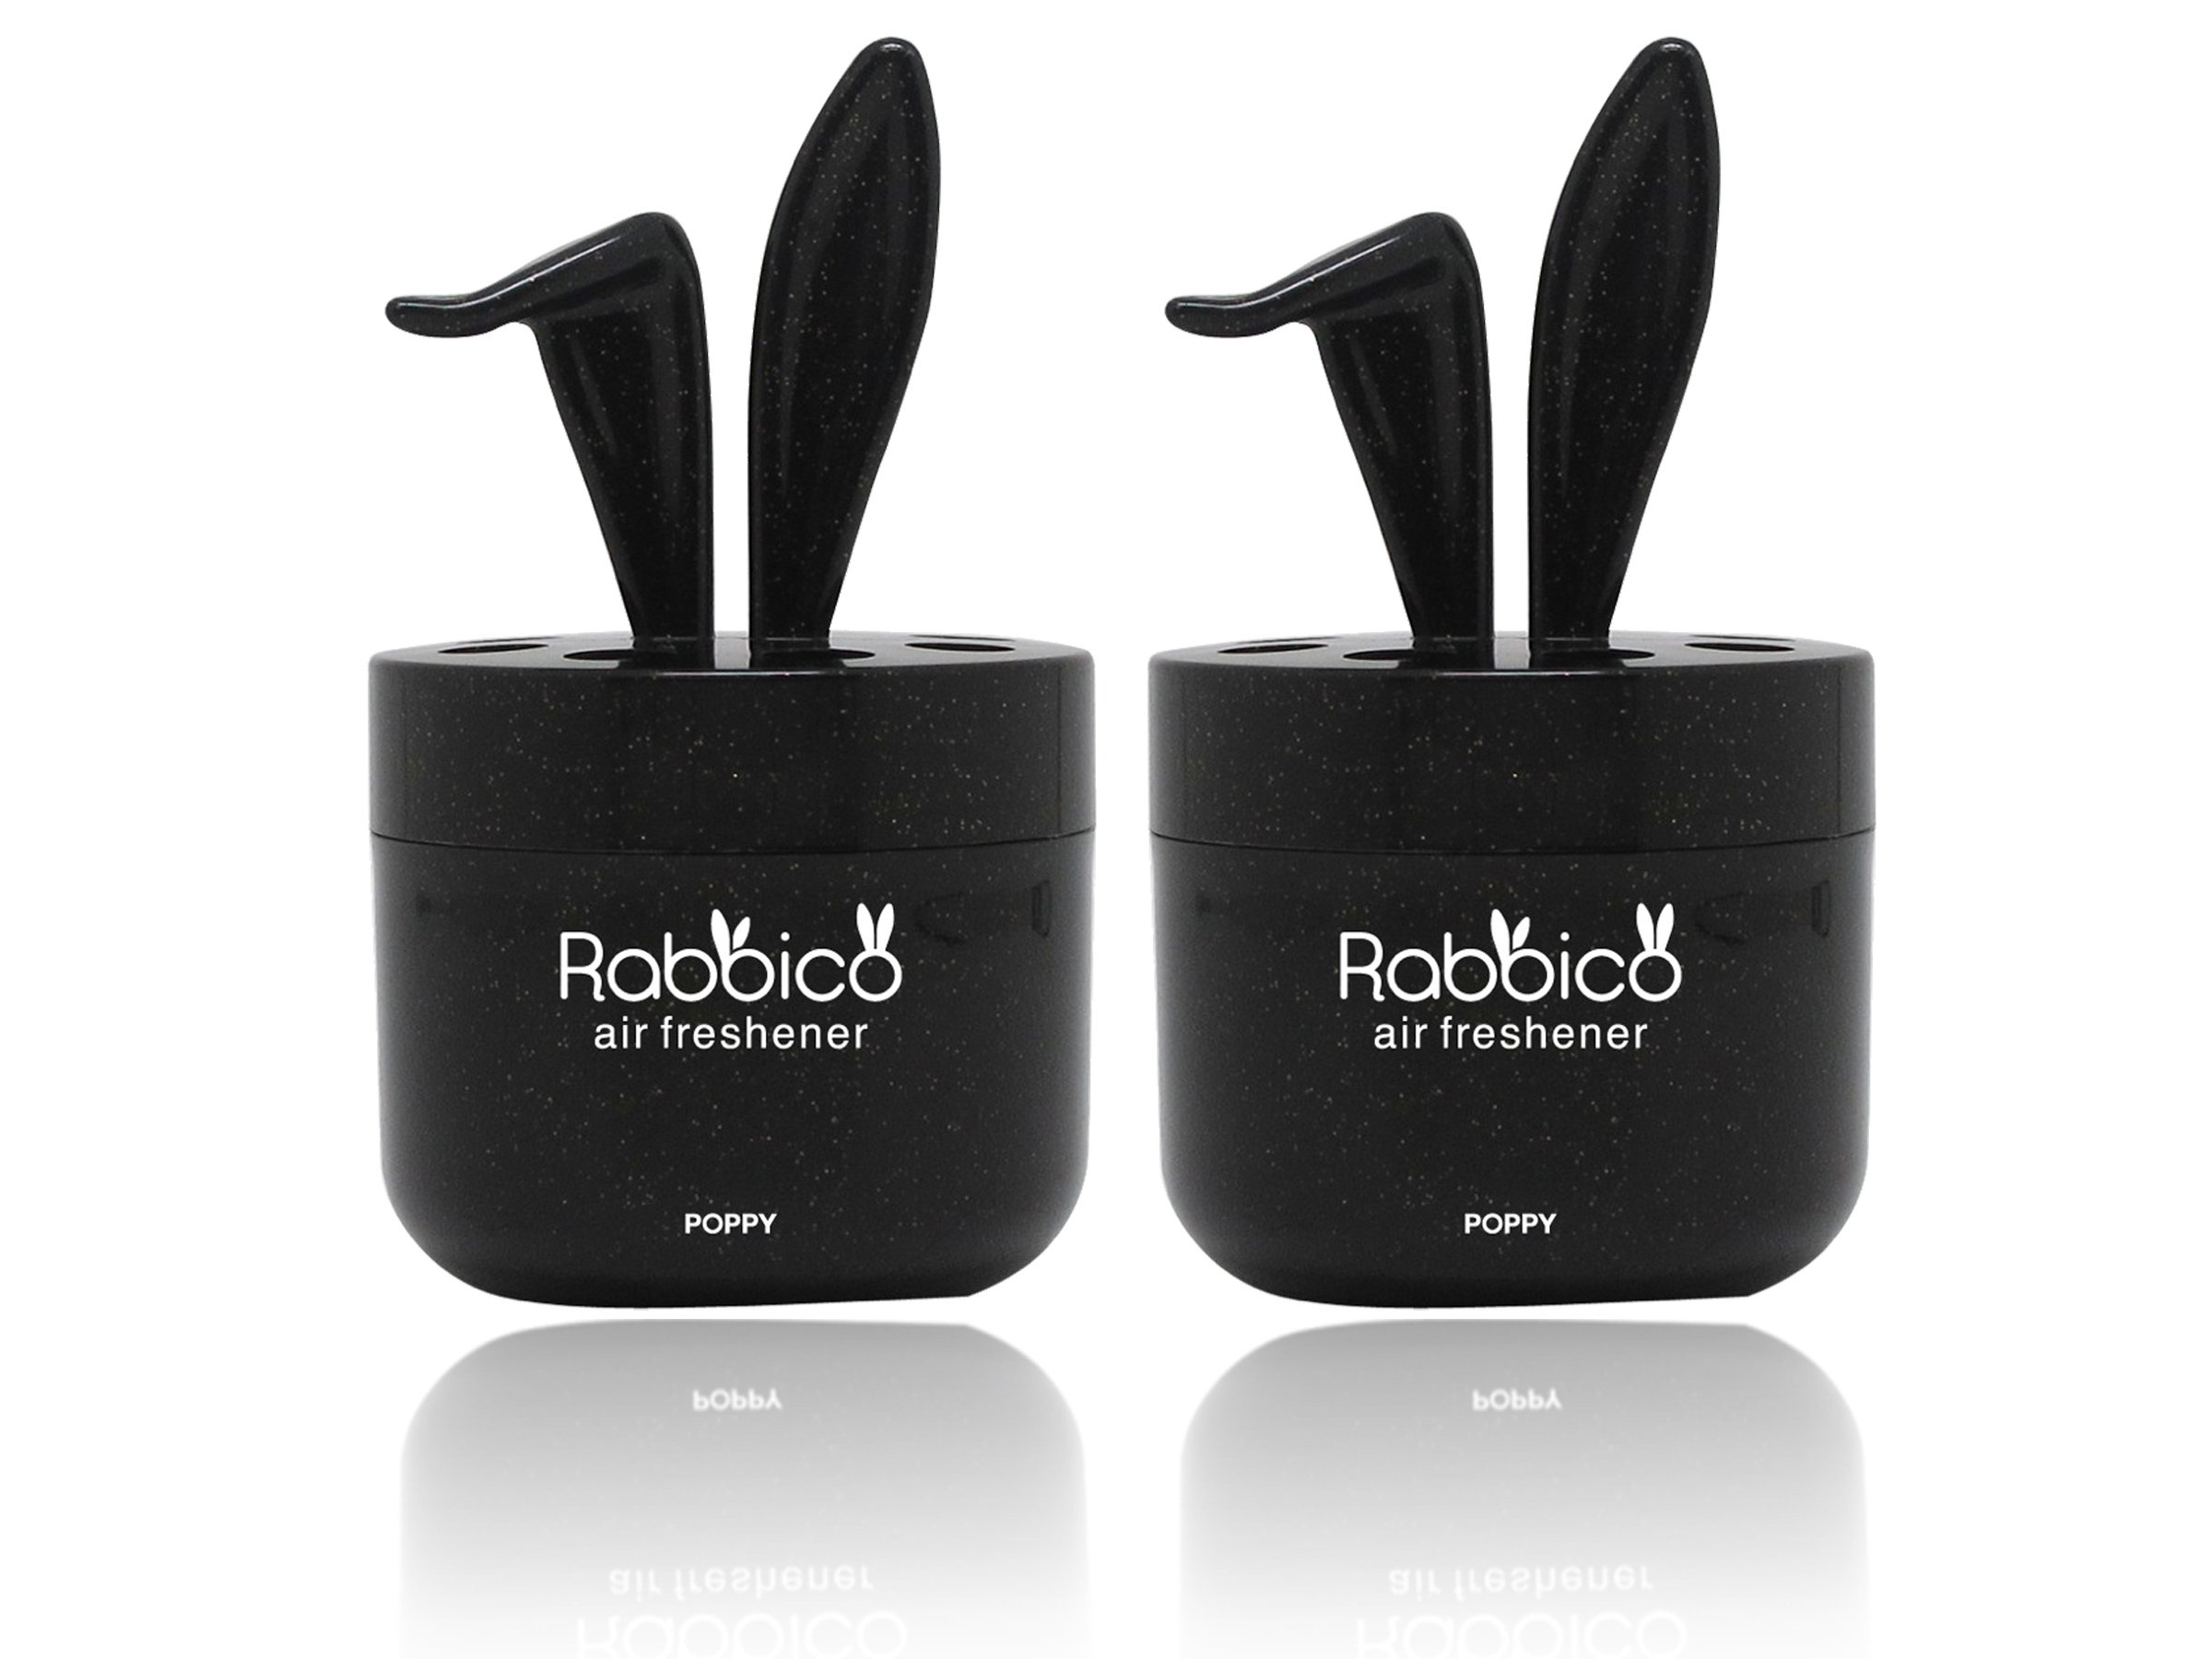 High Premium Quality (Best Deal) RABBICO SWEET 2 Packs (Rabbit lovely ears shape) Car, Home, Office Air Freshener Premium Rich Scent - Fresh clear scent of floral marine fragrance by YirehStore Air Freshener